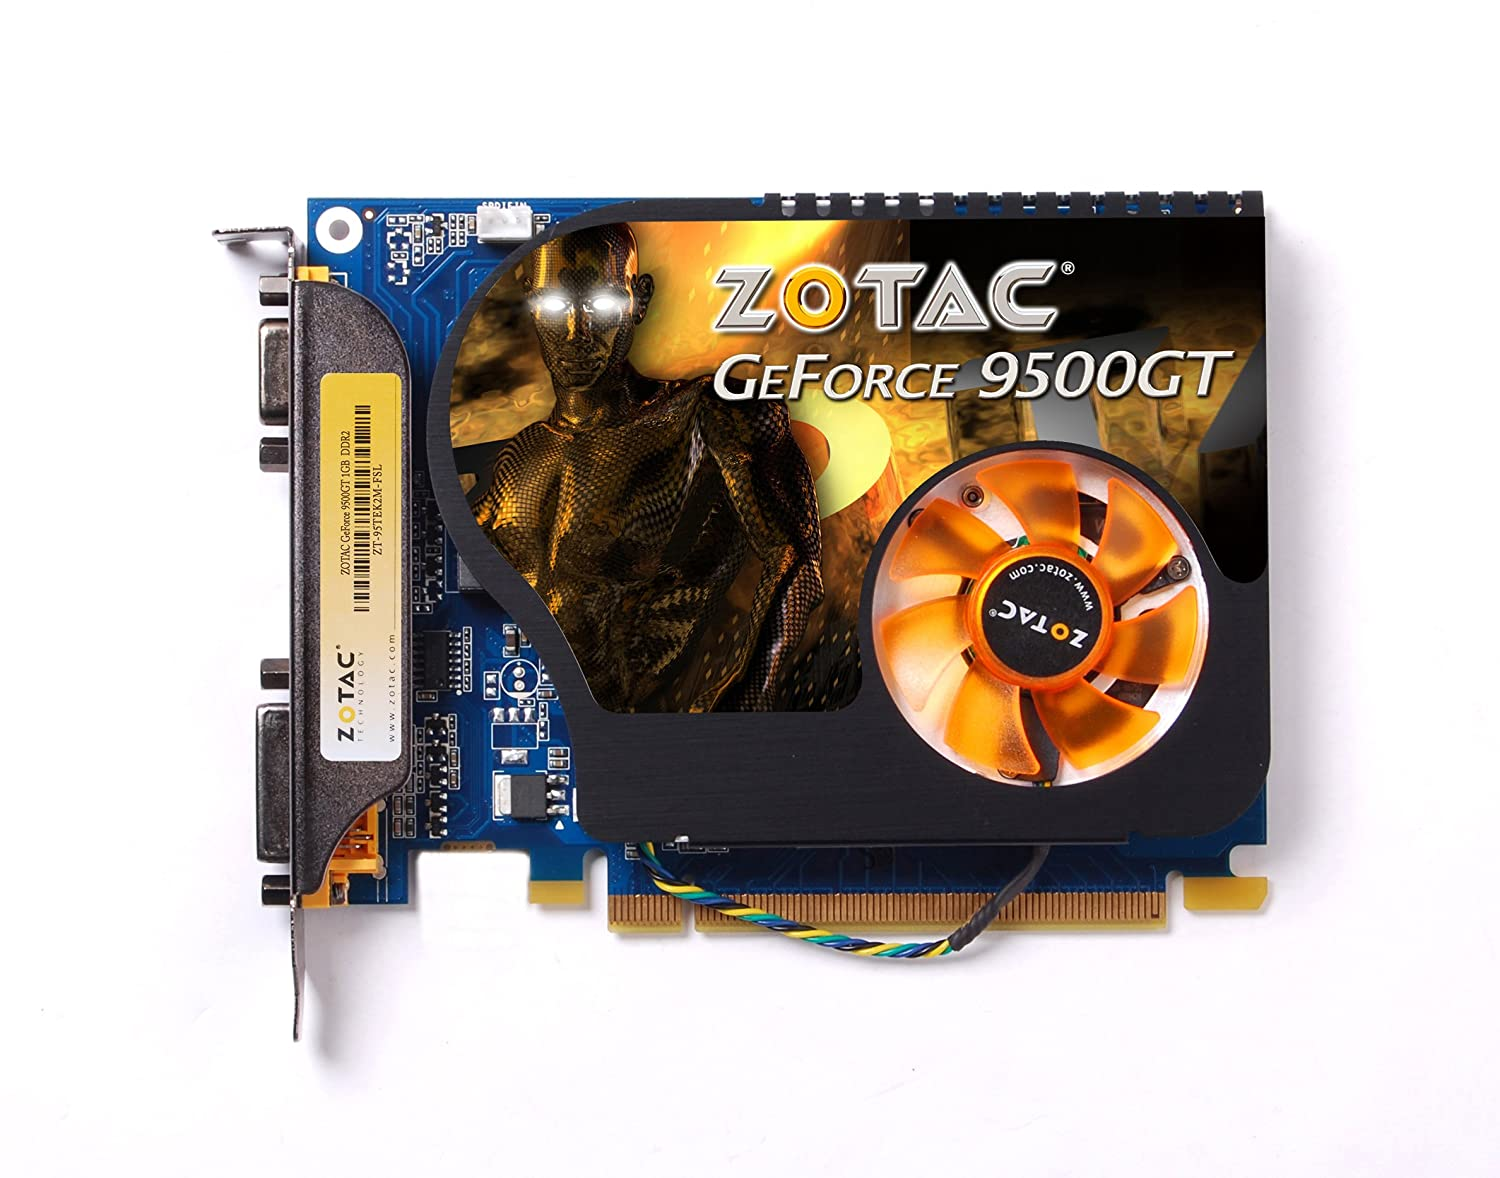 ZOTAC GEFORCE 9500 GT DRIVER FOR MAC DOWNLOAD